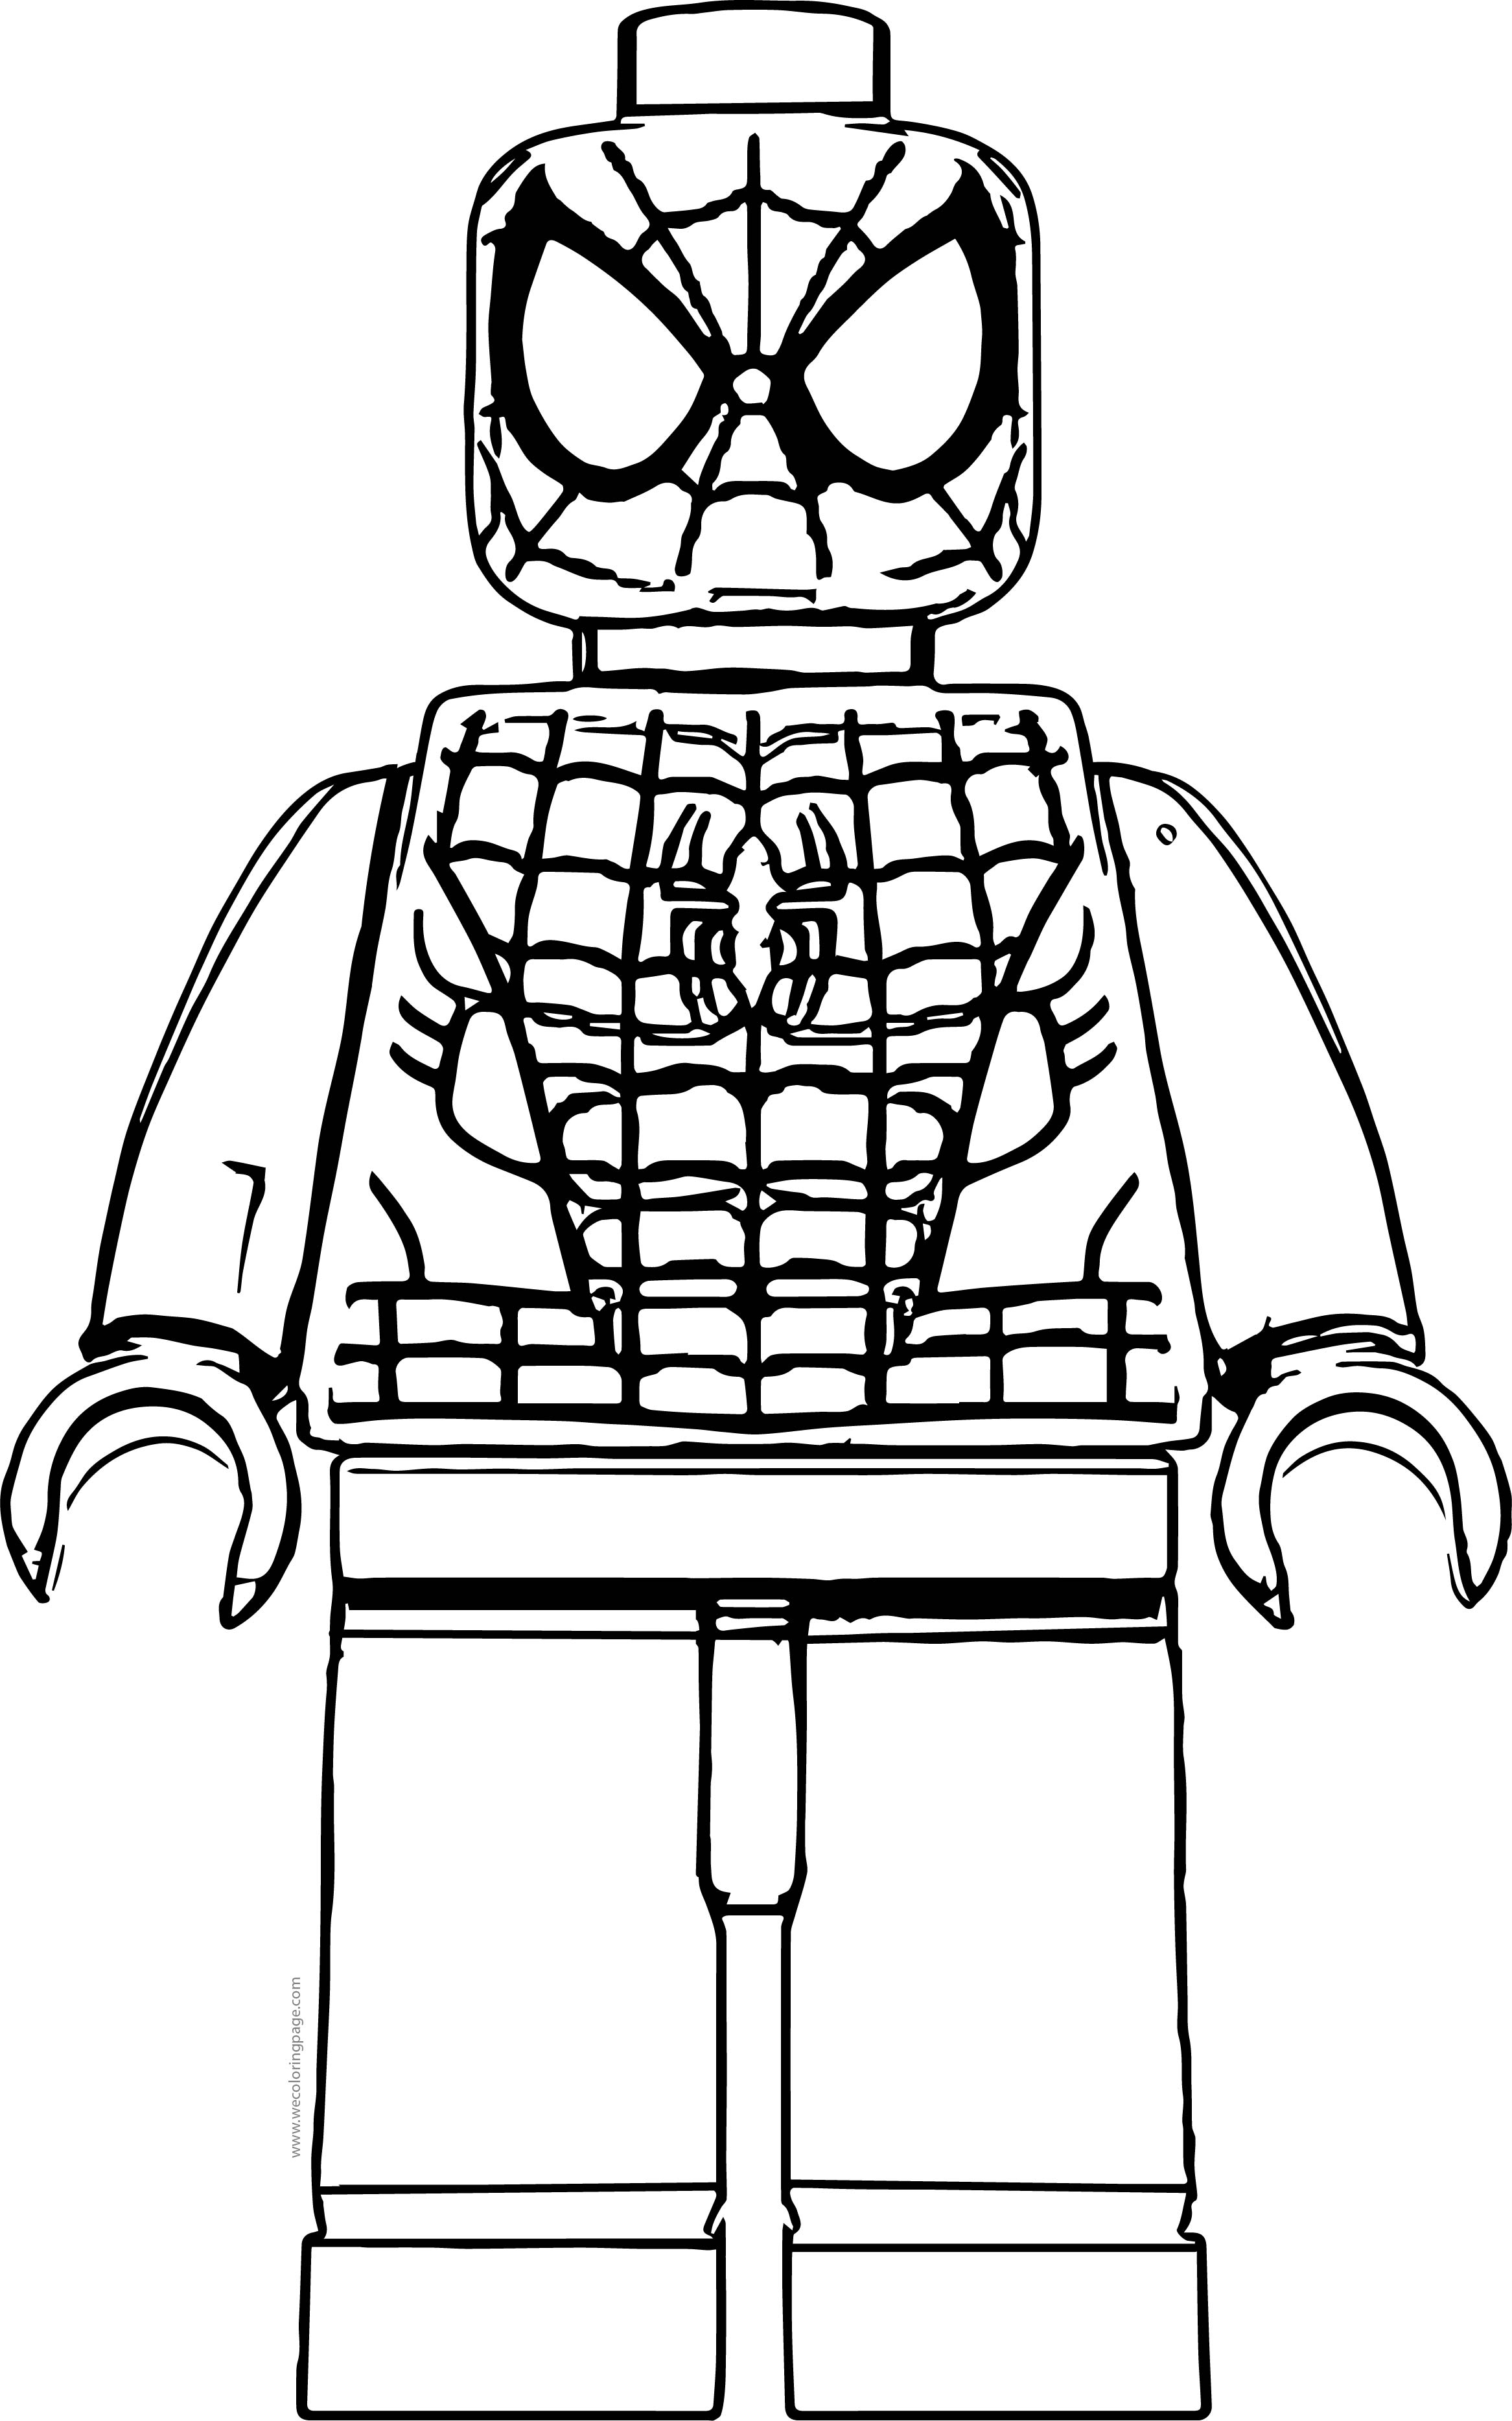 Lego Spiderman Coloring Pages – coloring.rocks!